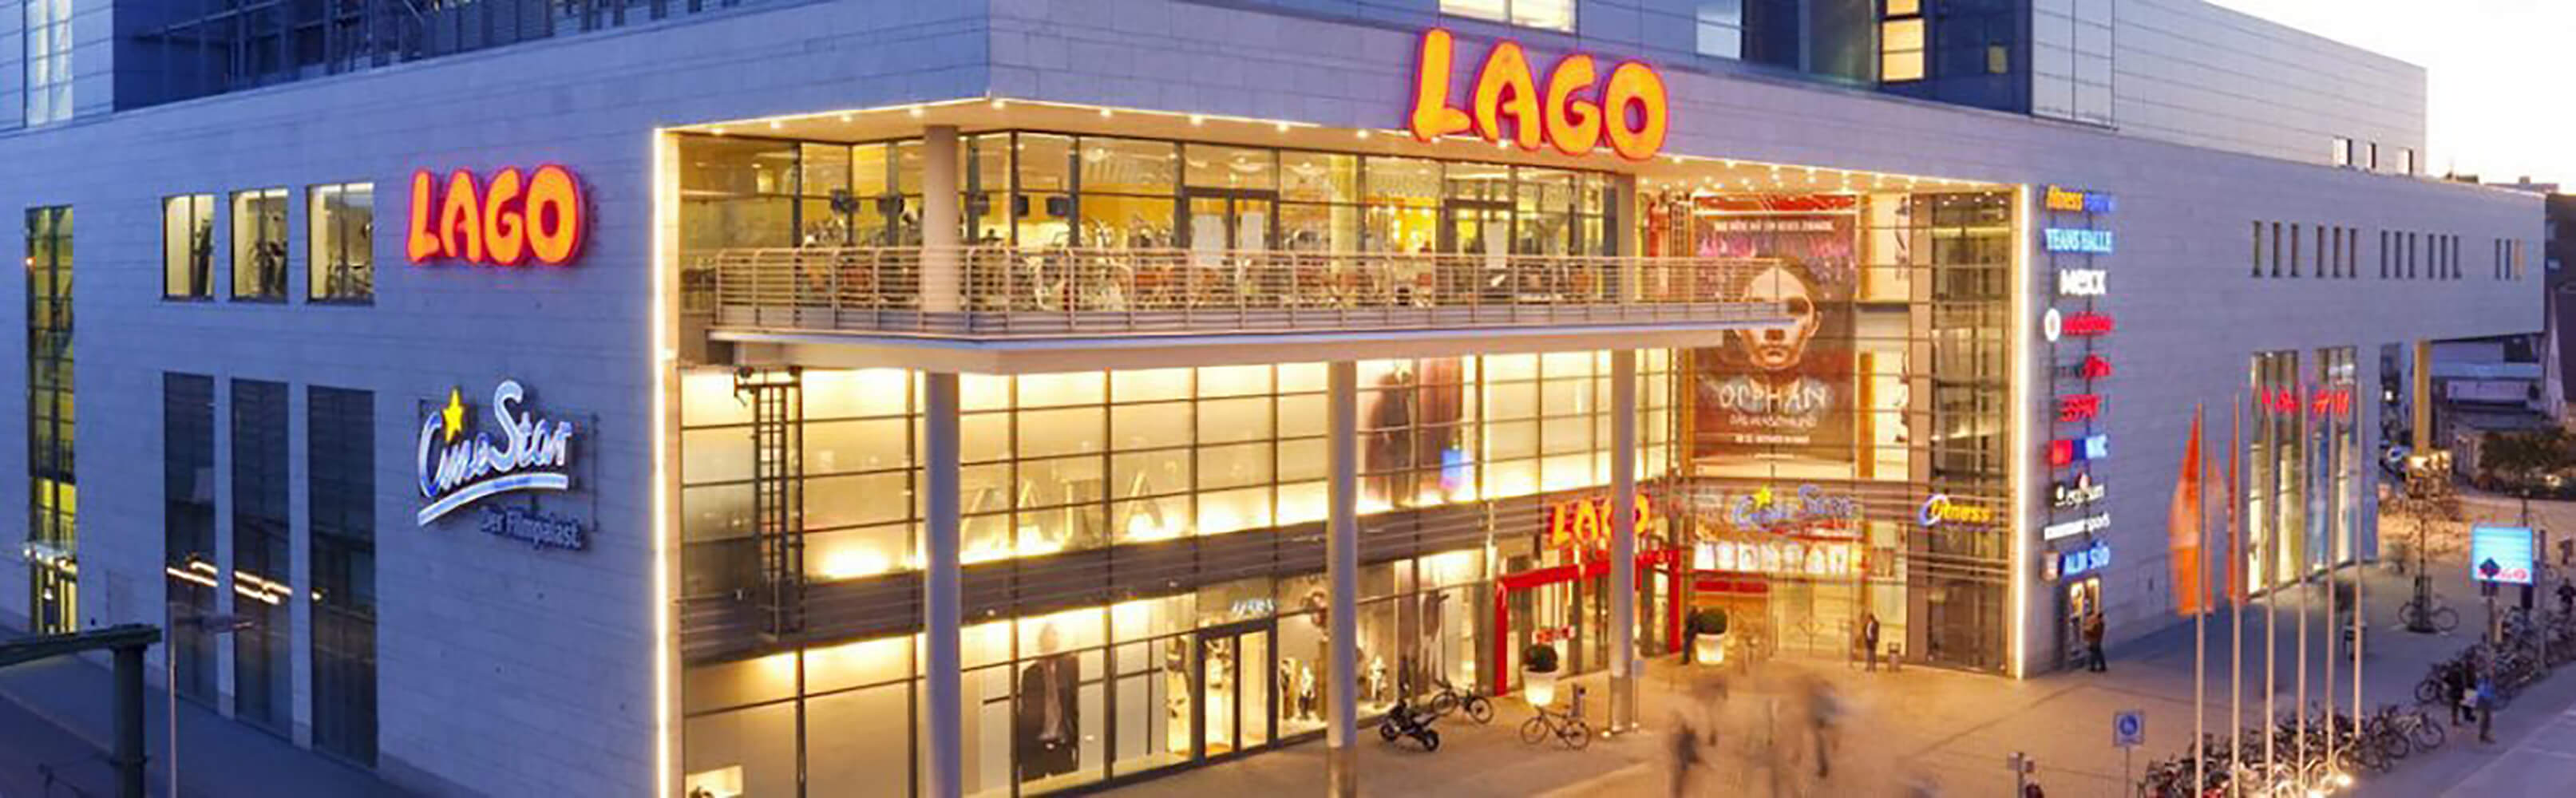 LAGO Shopping-Center 1